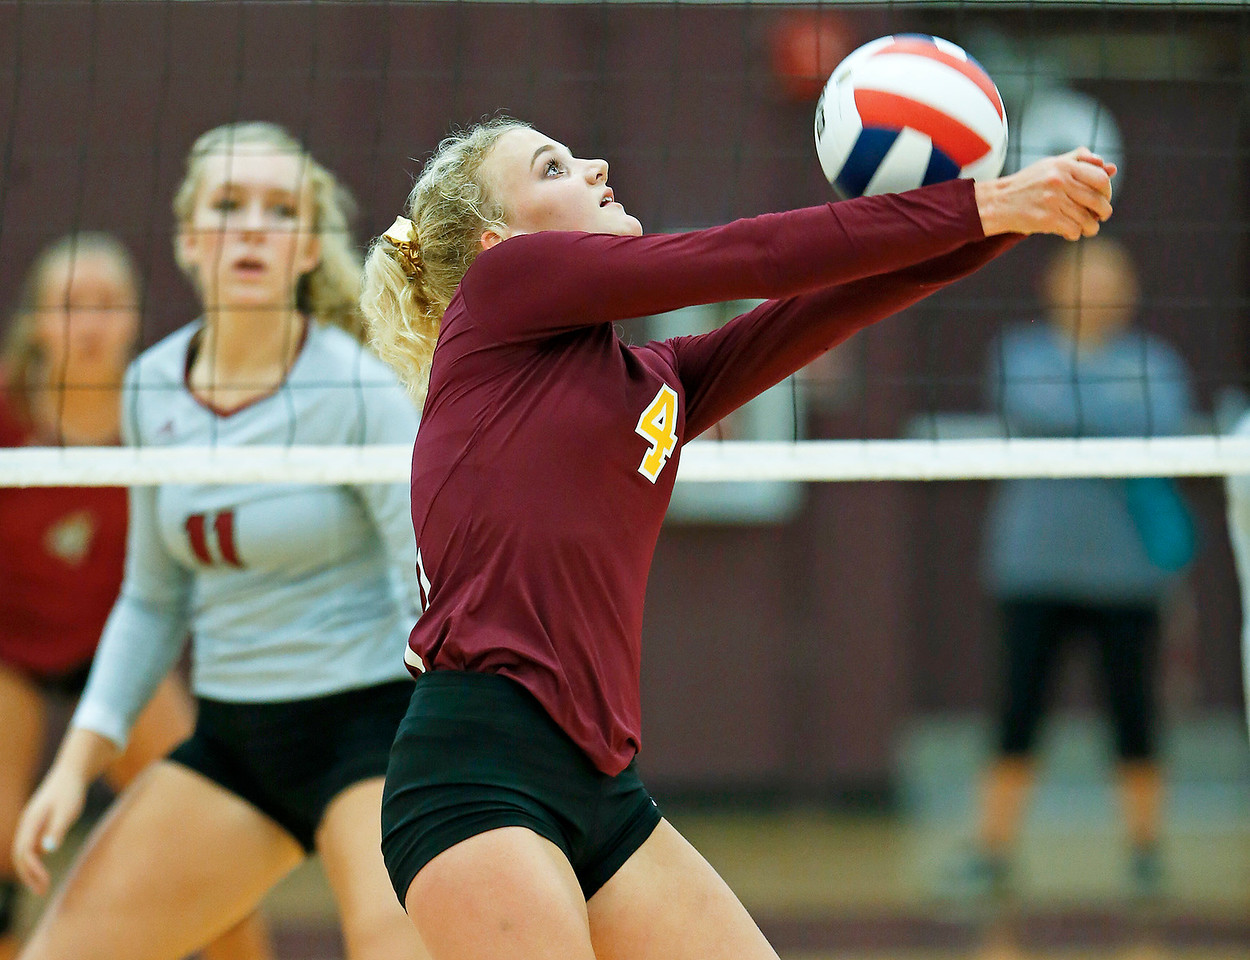 John Konstantaras - for Shaw Media Richmond-Burton's Sammy Duncan (4) bumps a ball during their second game against Antioch on Monday, August 28, 2017 in Richmond. The Sequoits defeated the Rockets in 2 games; 15-25, 23-25.